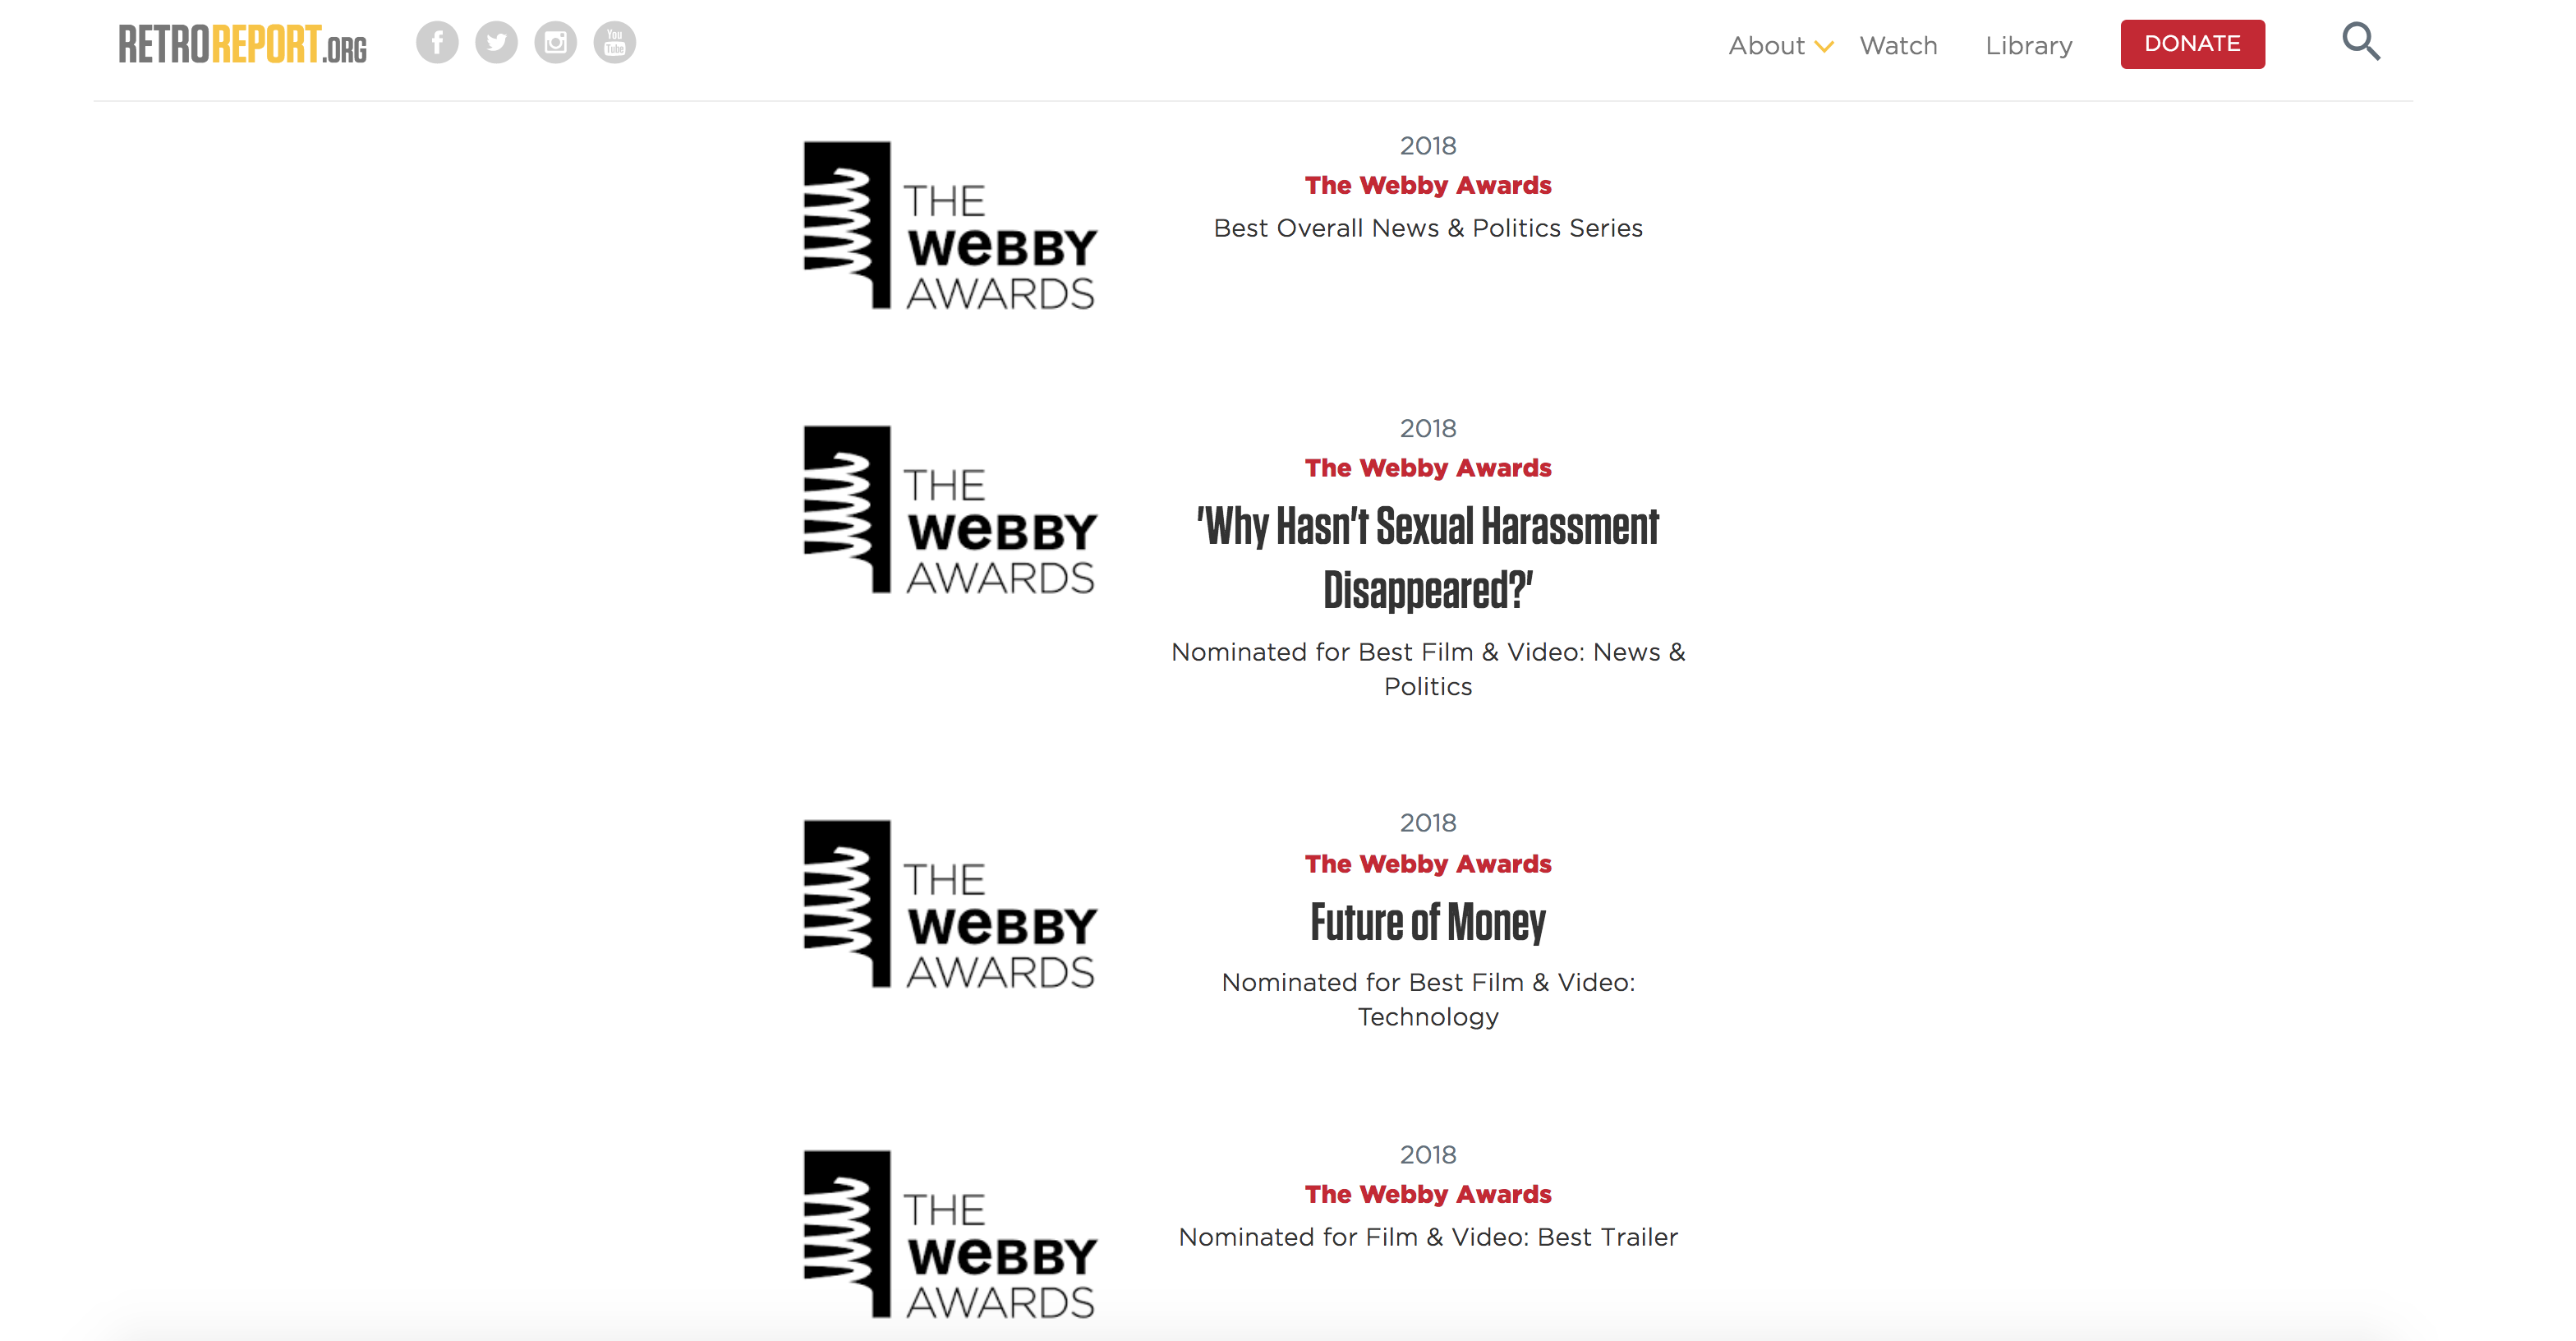 Retro Report Shows Its Multiple Webby Wins